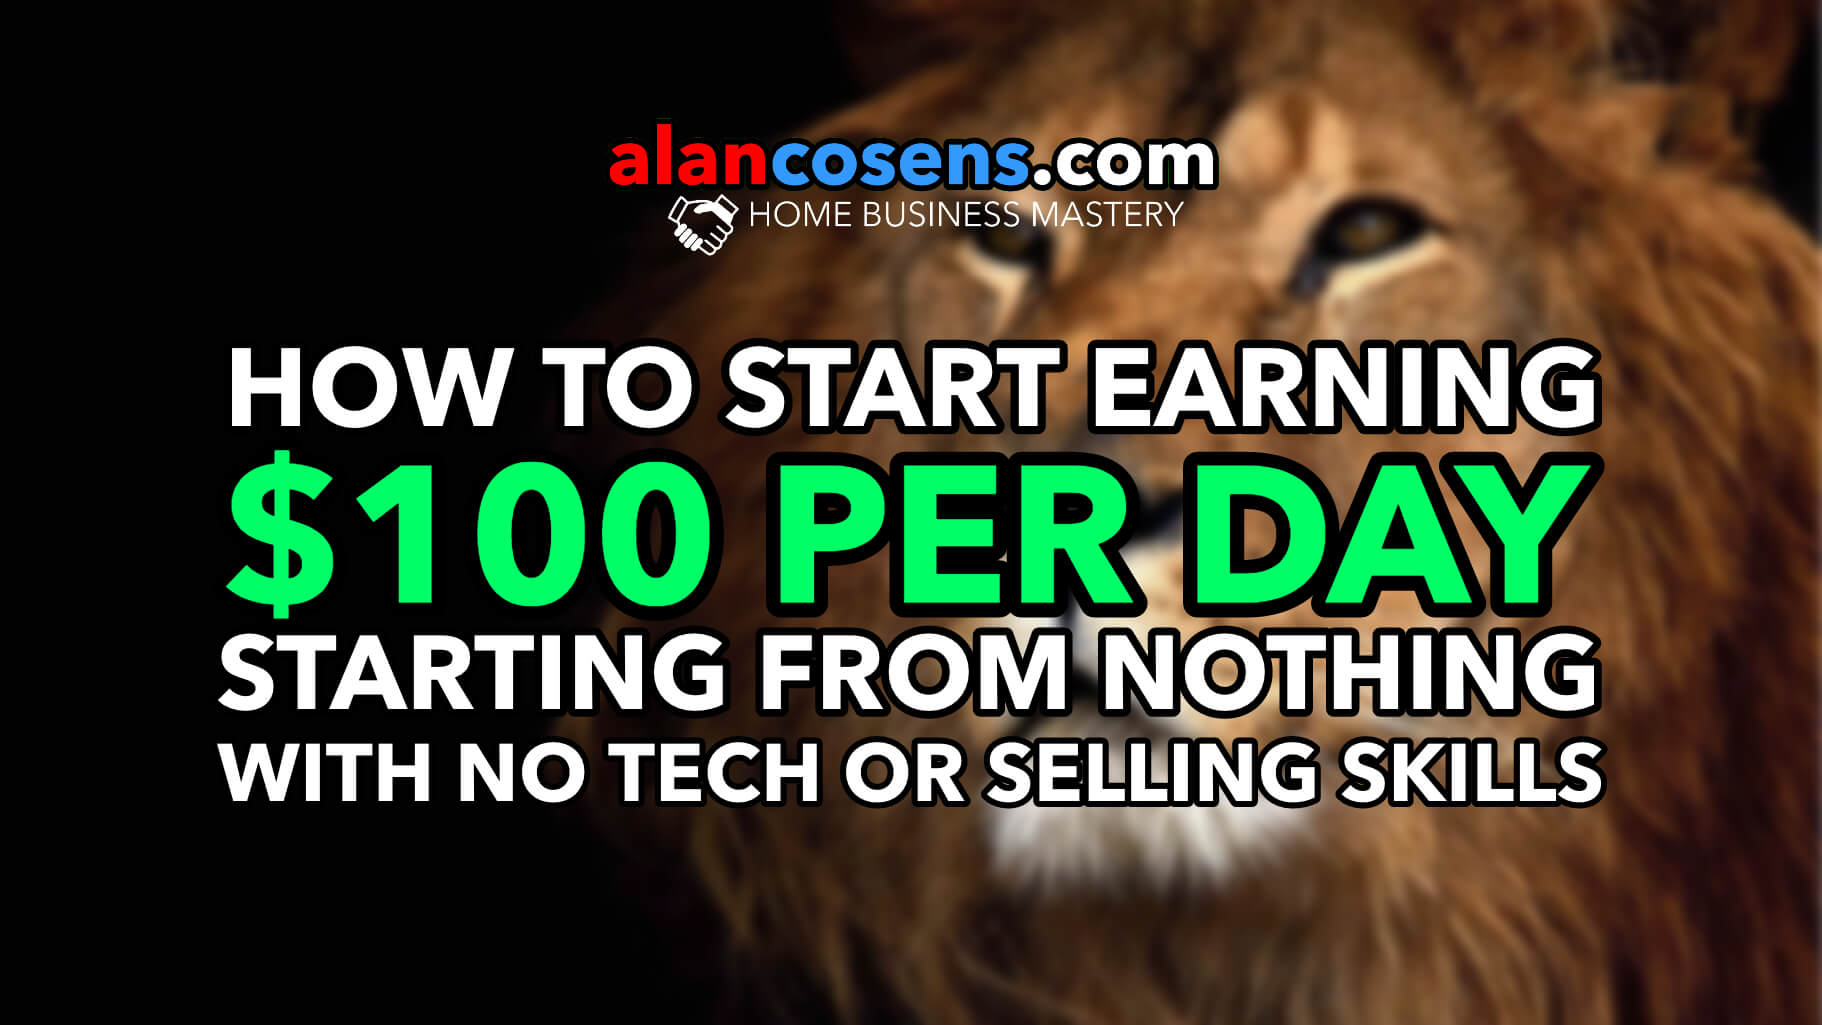 $100 Per Day, Starting From Nothing